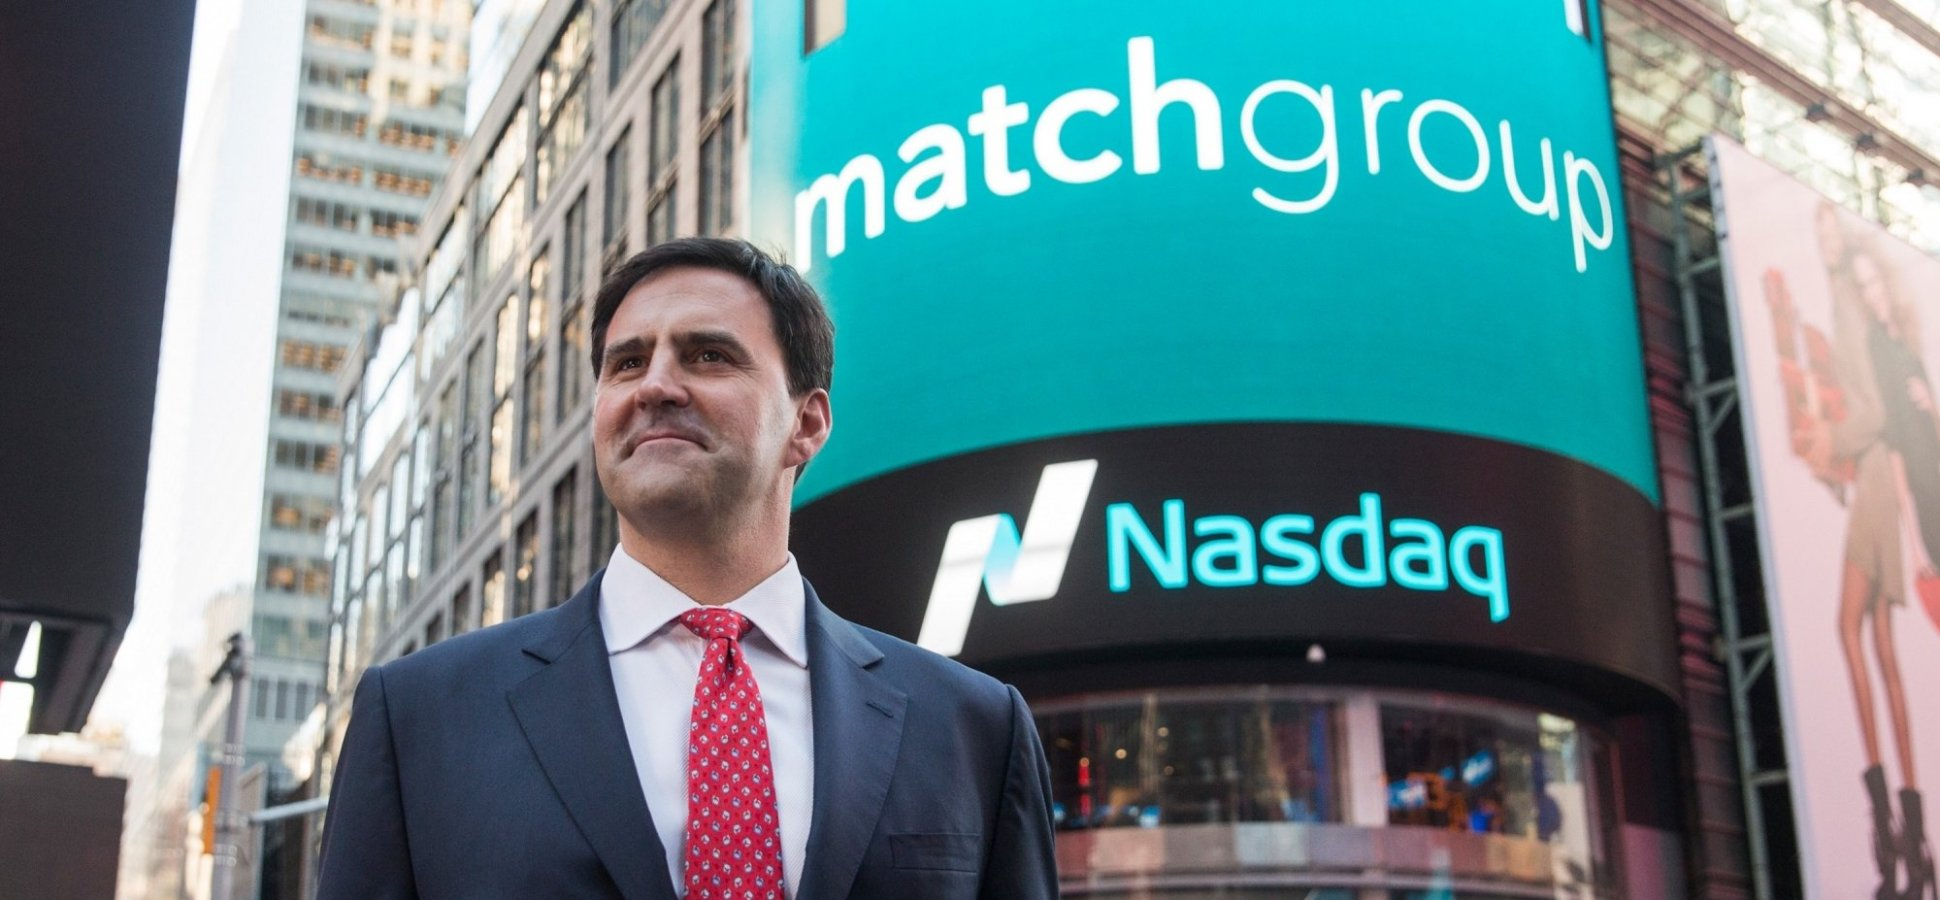 FTC Lawsuit Says Match.com Lured Subscribers With Fake Love Messages